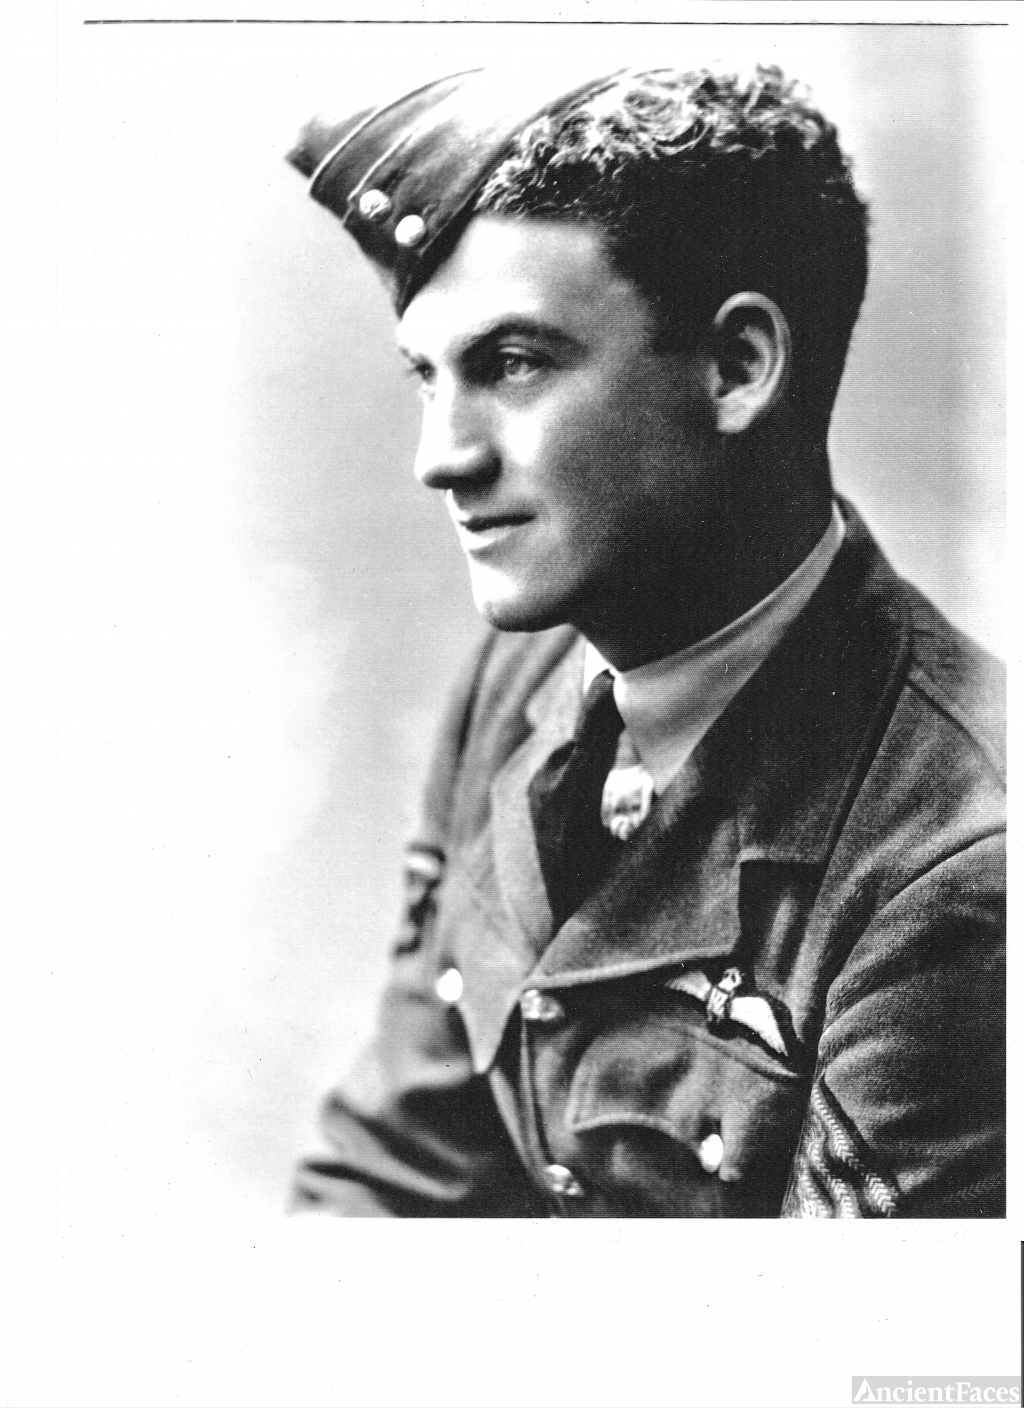 Sergeant Aynsley S Forbes, 1940